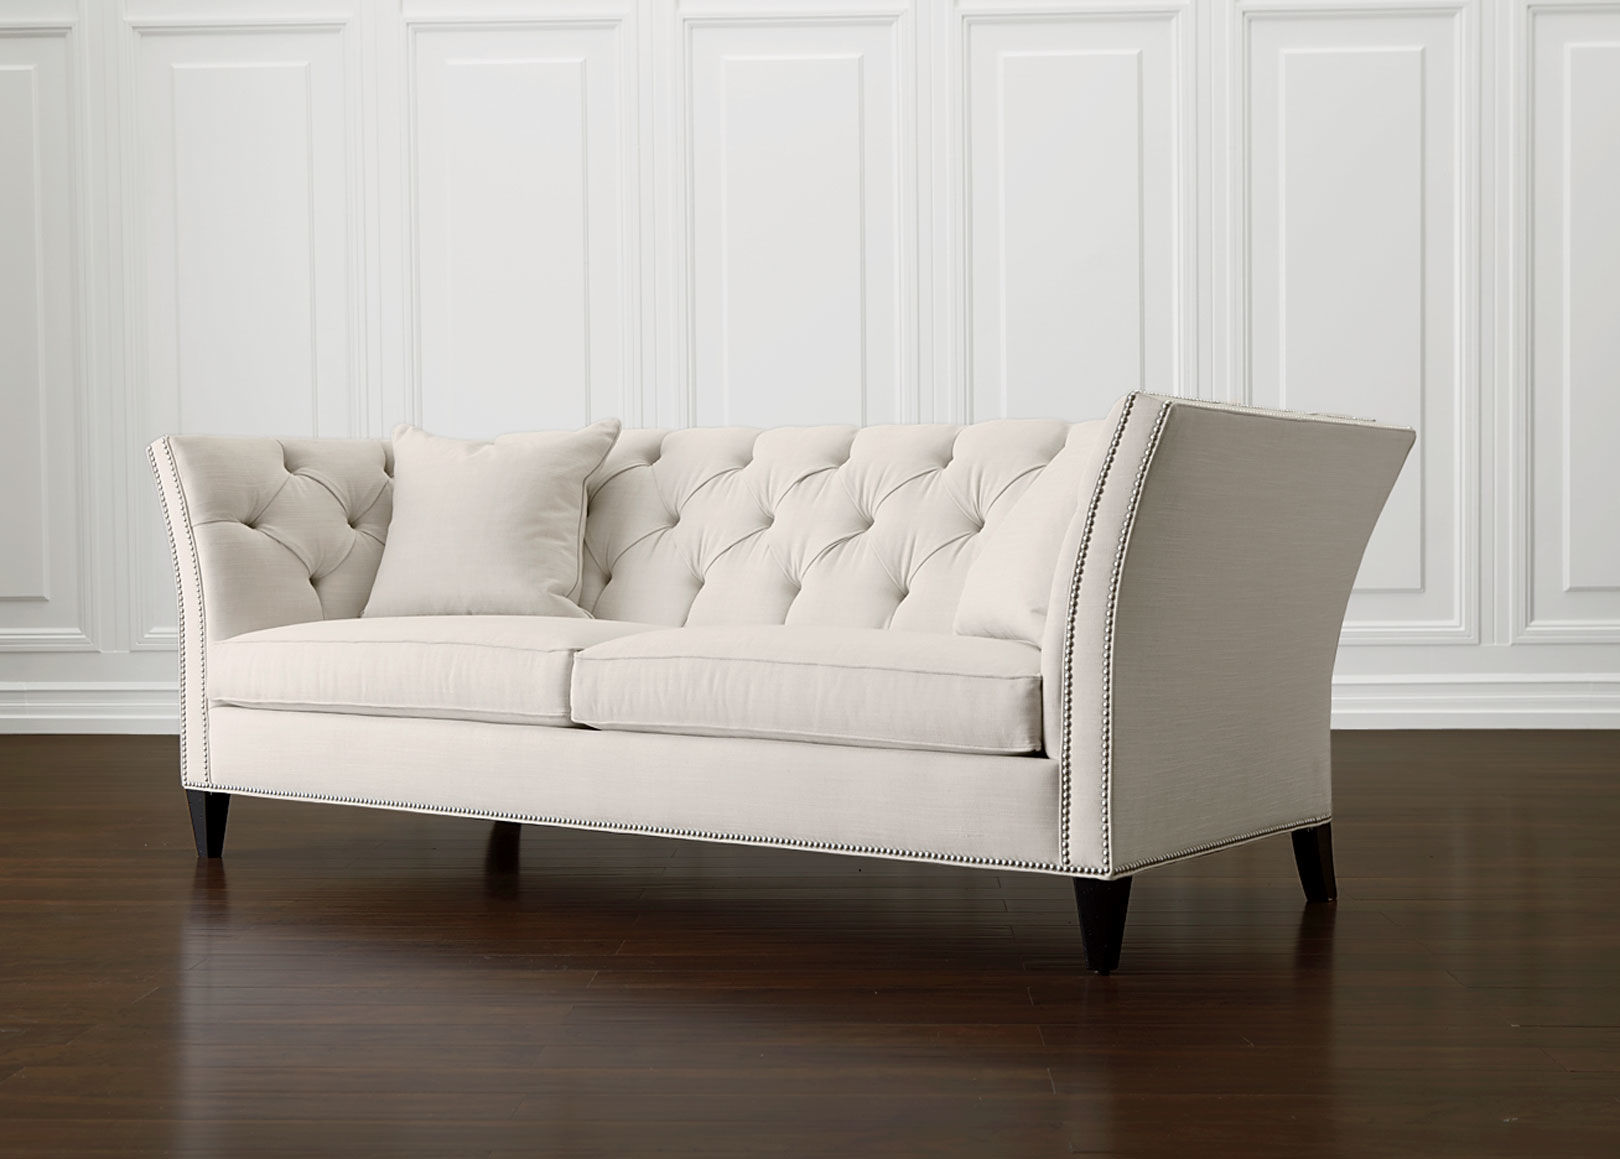 Macys Sofa Sleeper